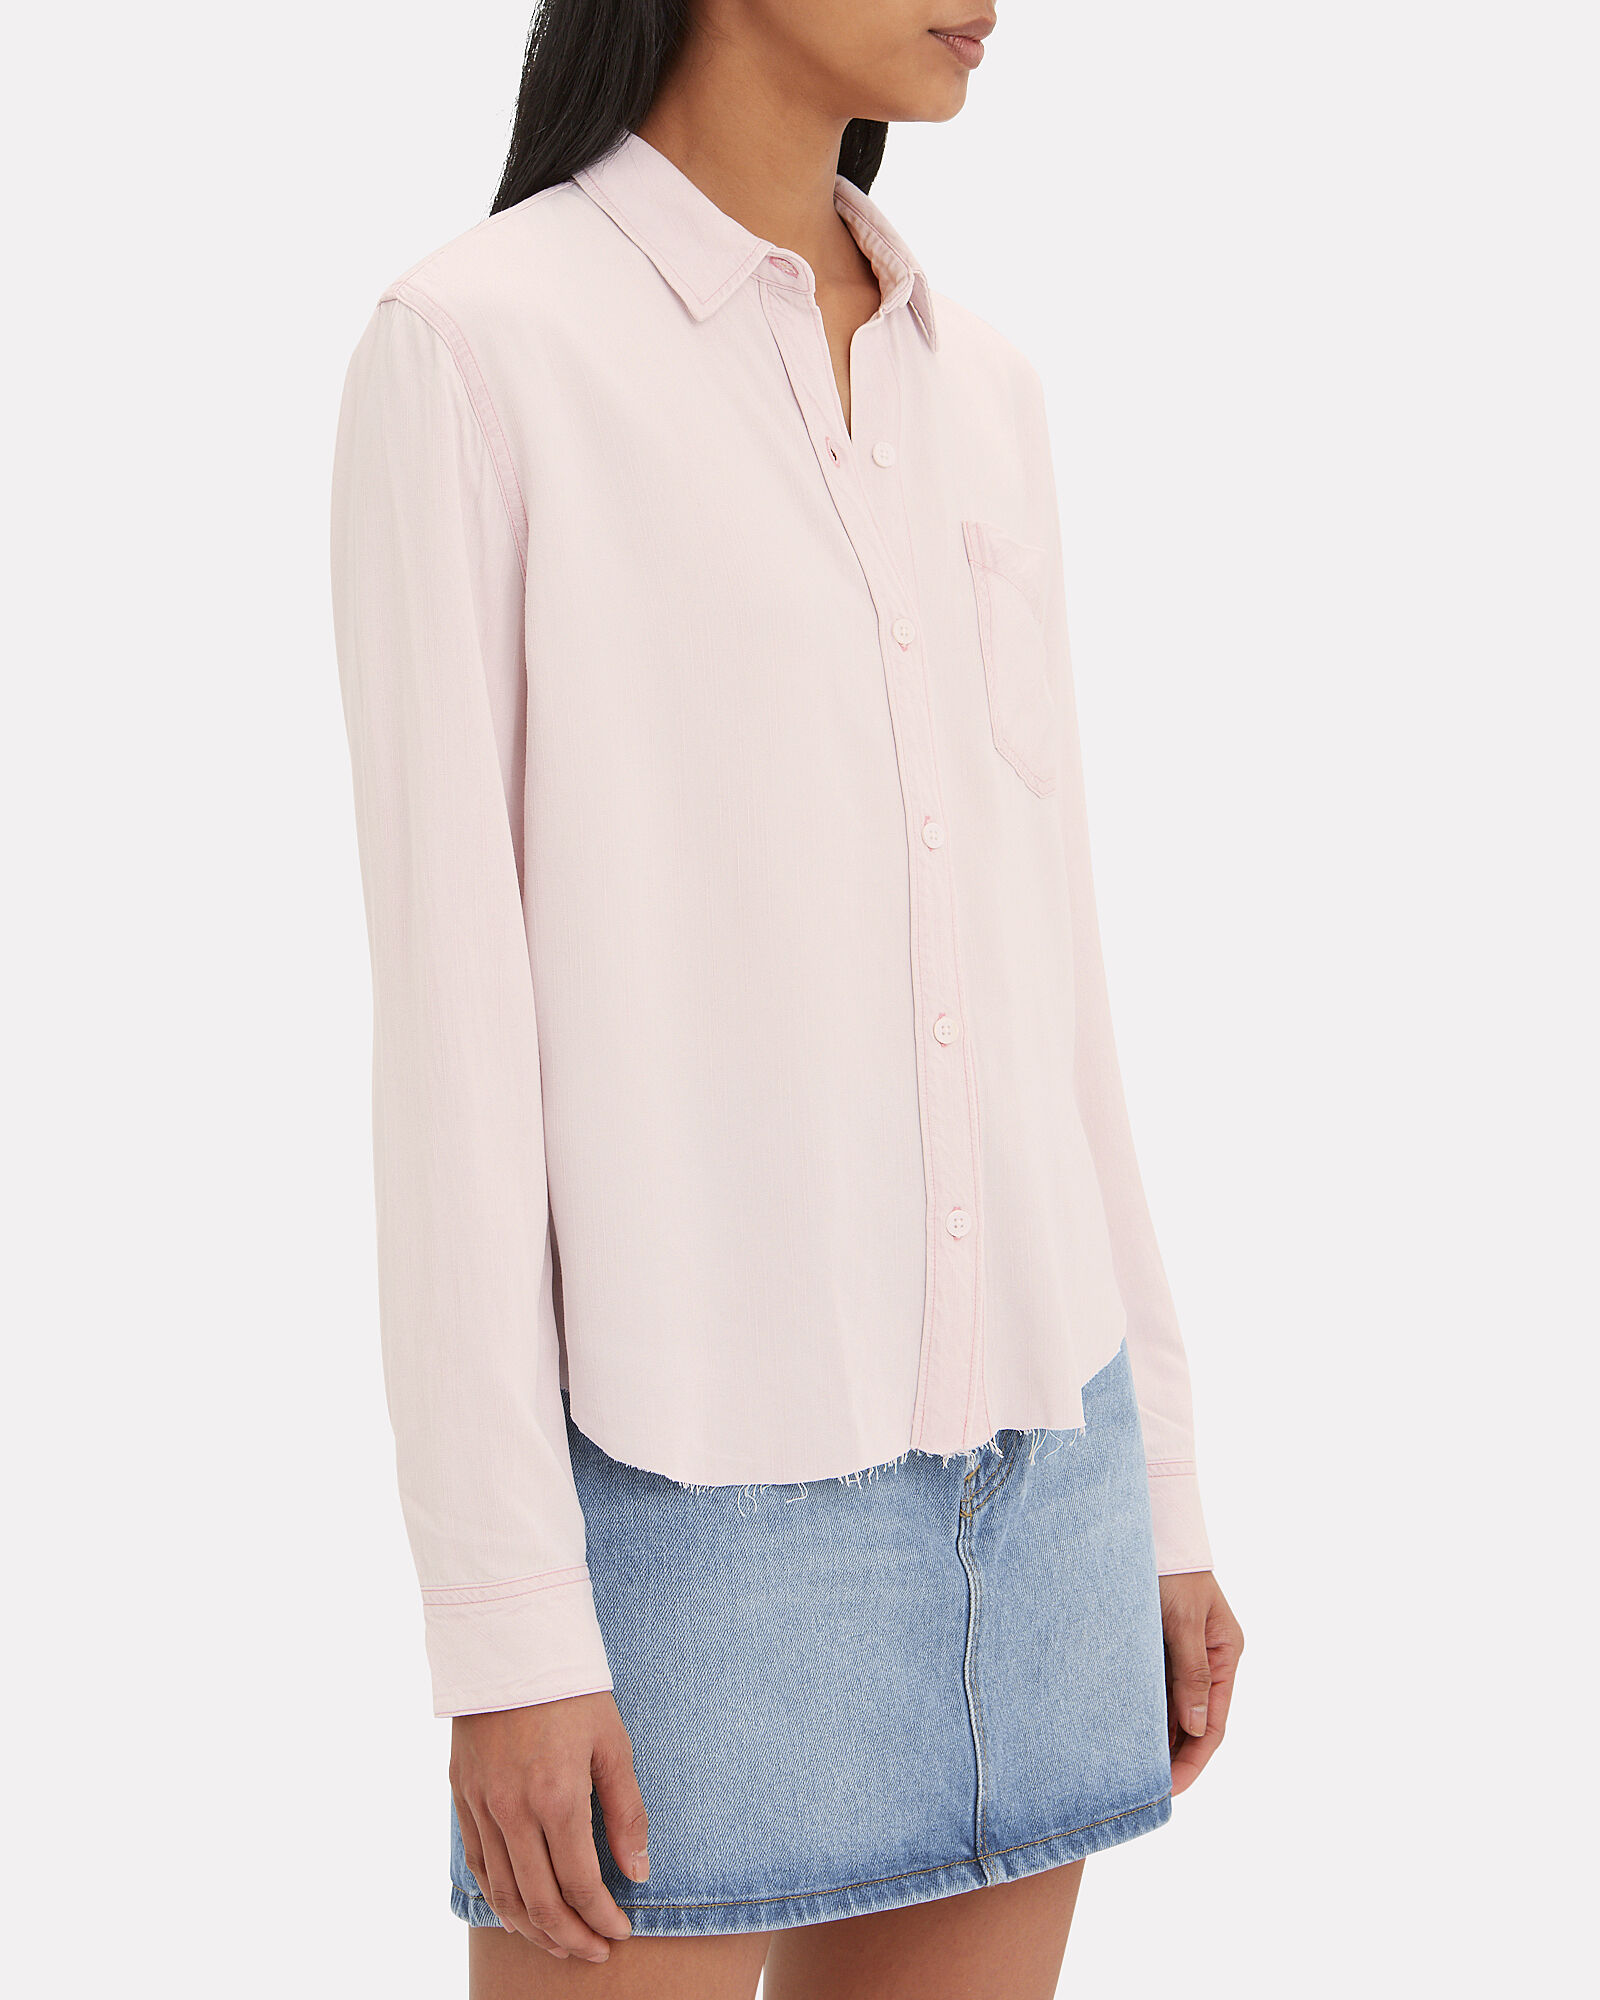 Ingrid Raw Hem Button-Down Shirt, PINK, hi-res